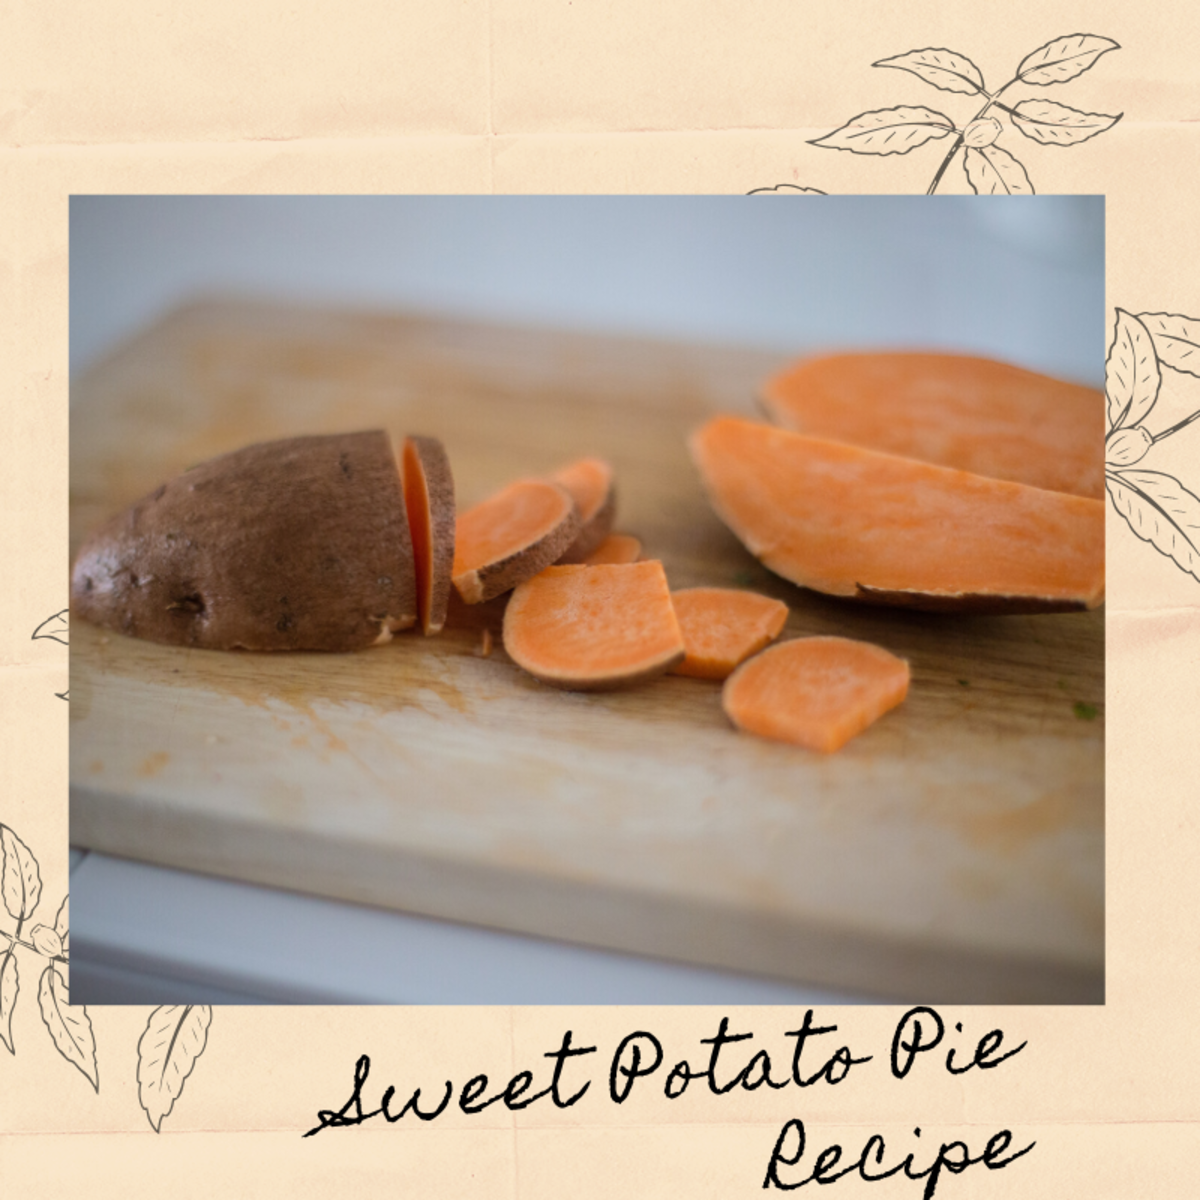 Your whole family will love this sweet potato pie recipe.